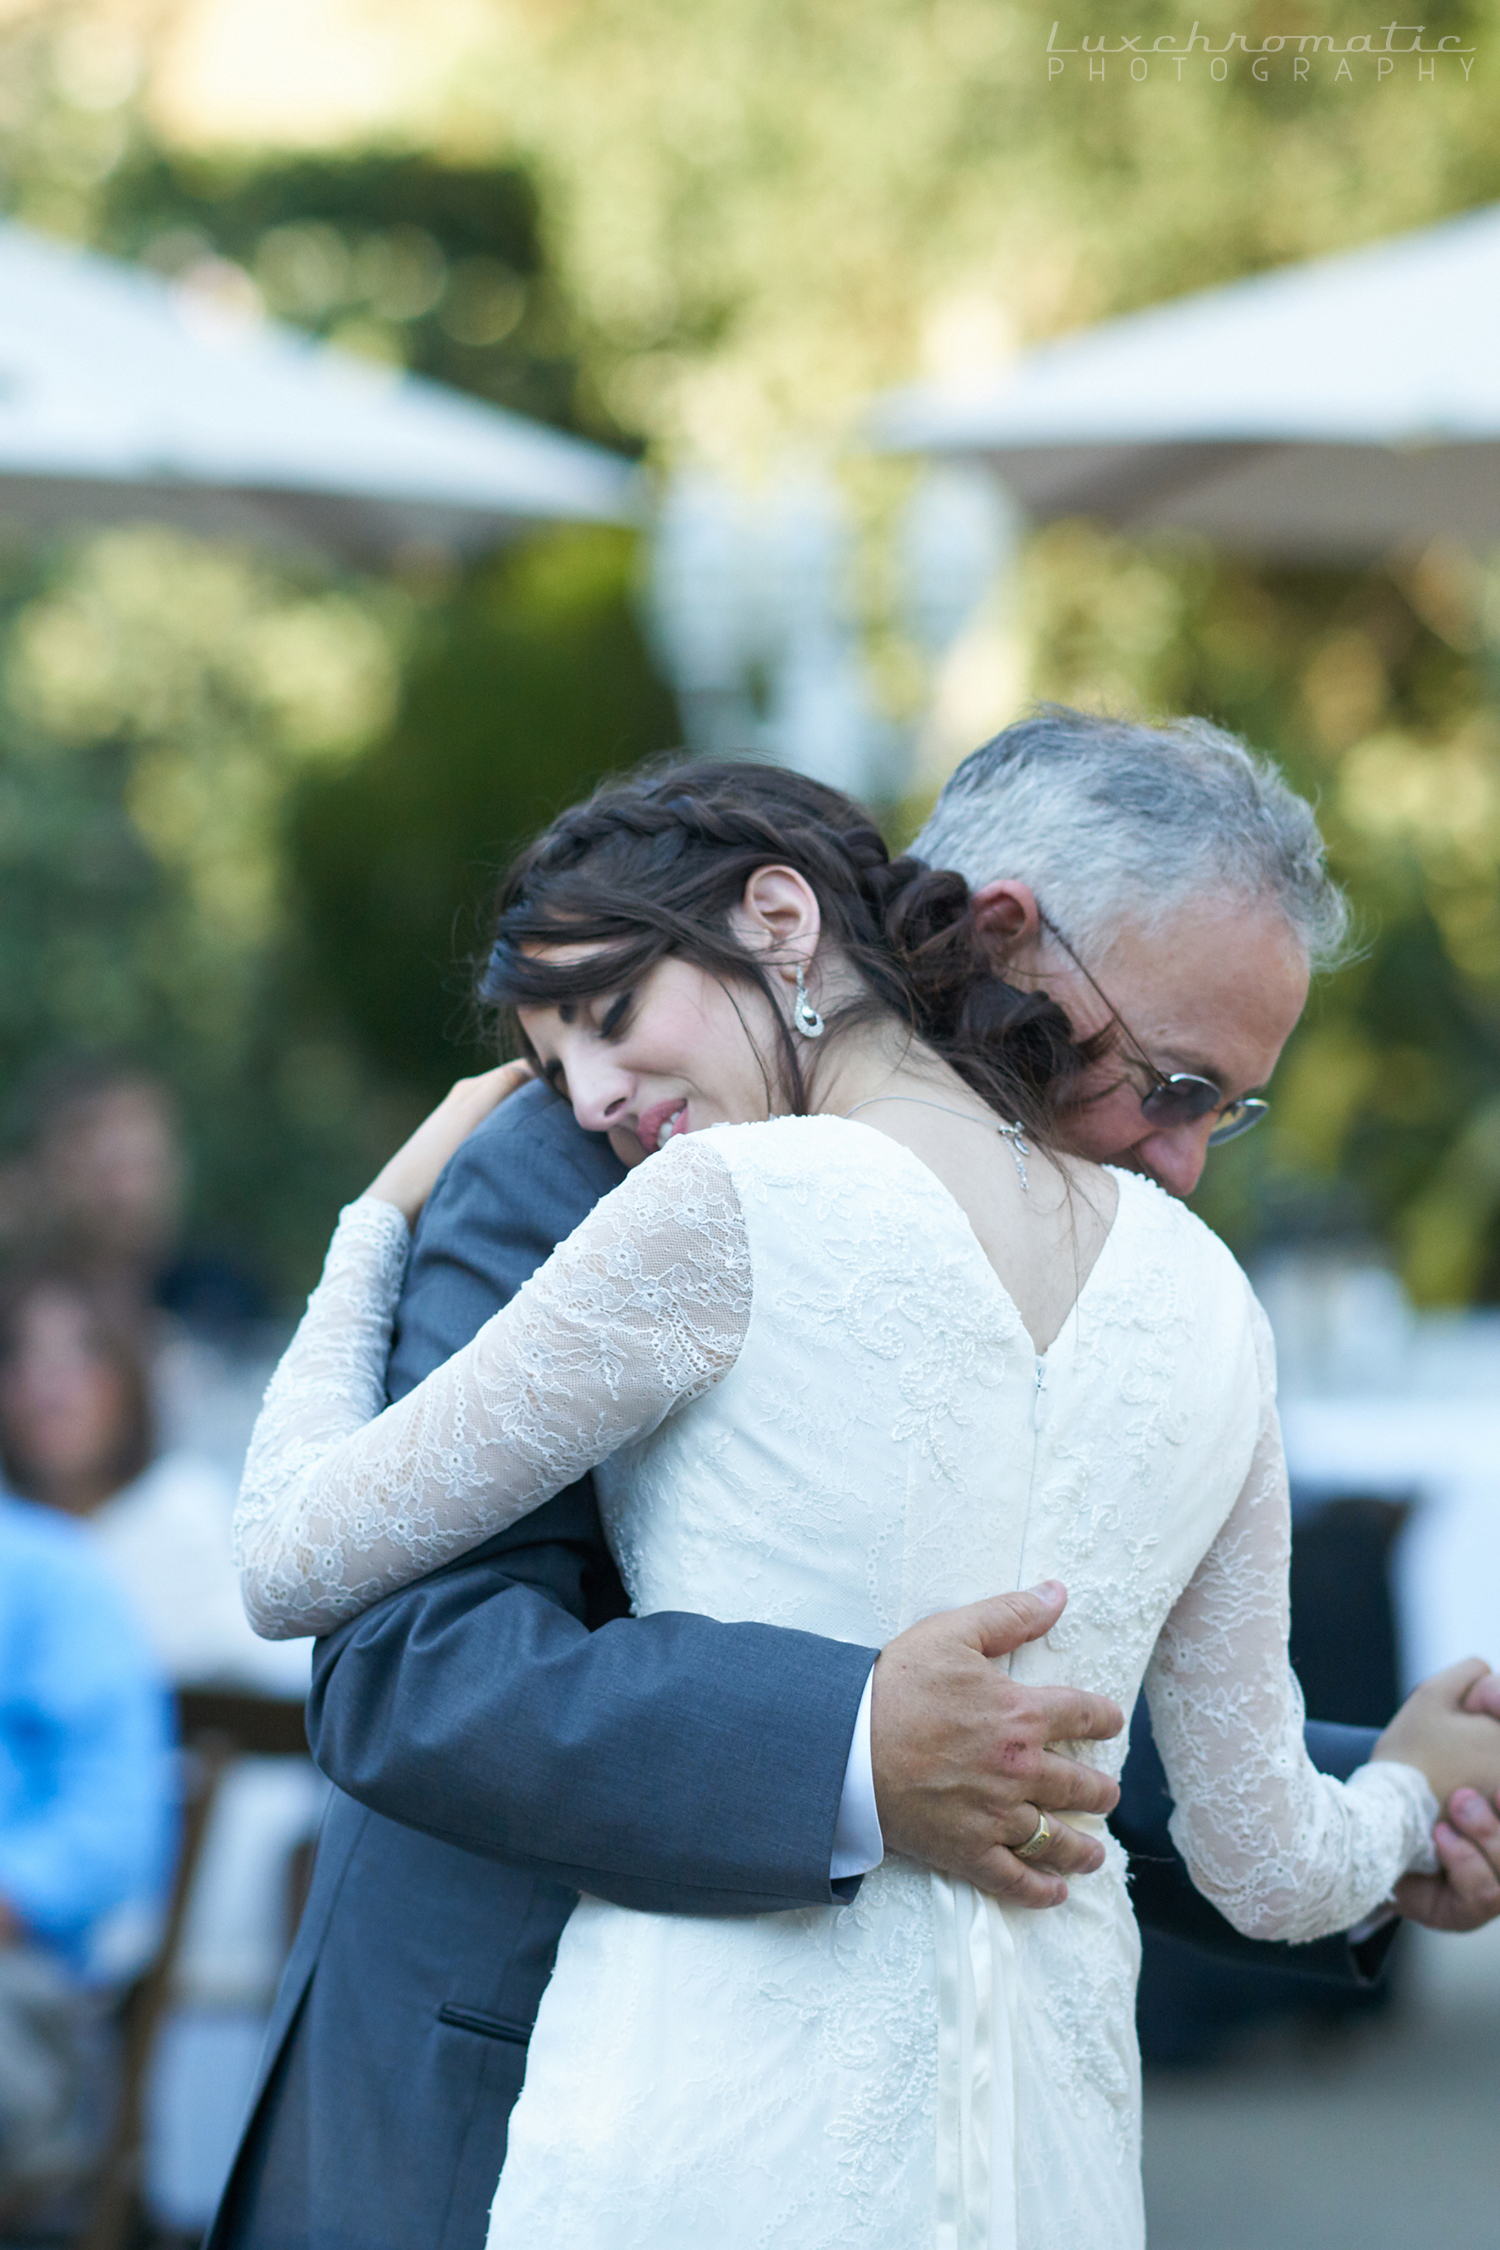 070817_Steph_Sil-San-Francisco-Bay-Area-Carmel-Valley-Monterey-Bay-California-Wedding-Los-Laureles-Lodge-Bride-Gown-Dress-Groom-Engaged-Knot-Bridesmaids-Luxchromatic-Portrait-Sony-Alpha-a7Rii-Interfit-Profoto-Best-Photographer-Photography-0952 copy.jpg